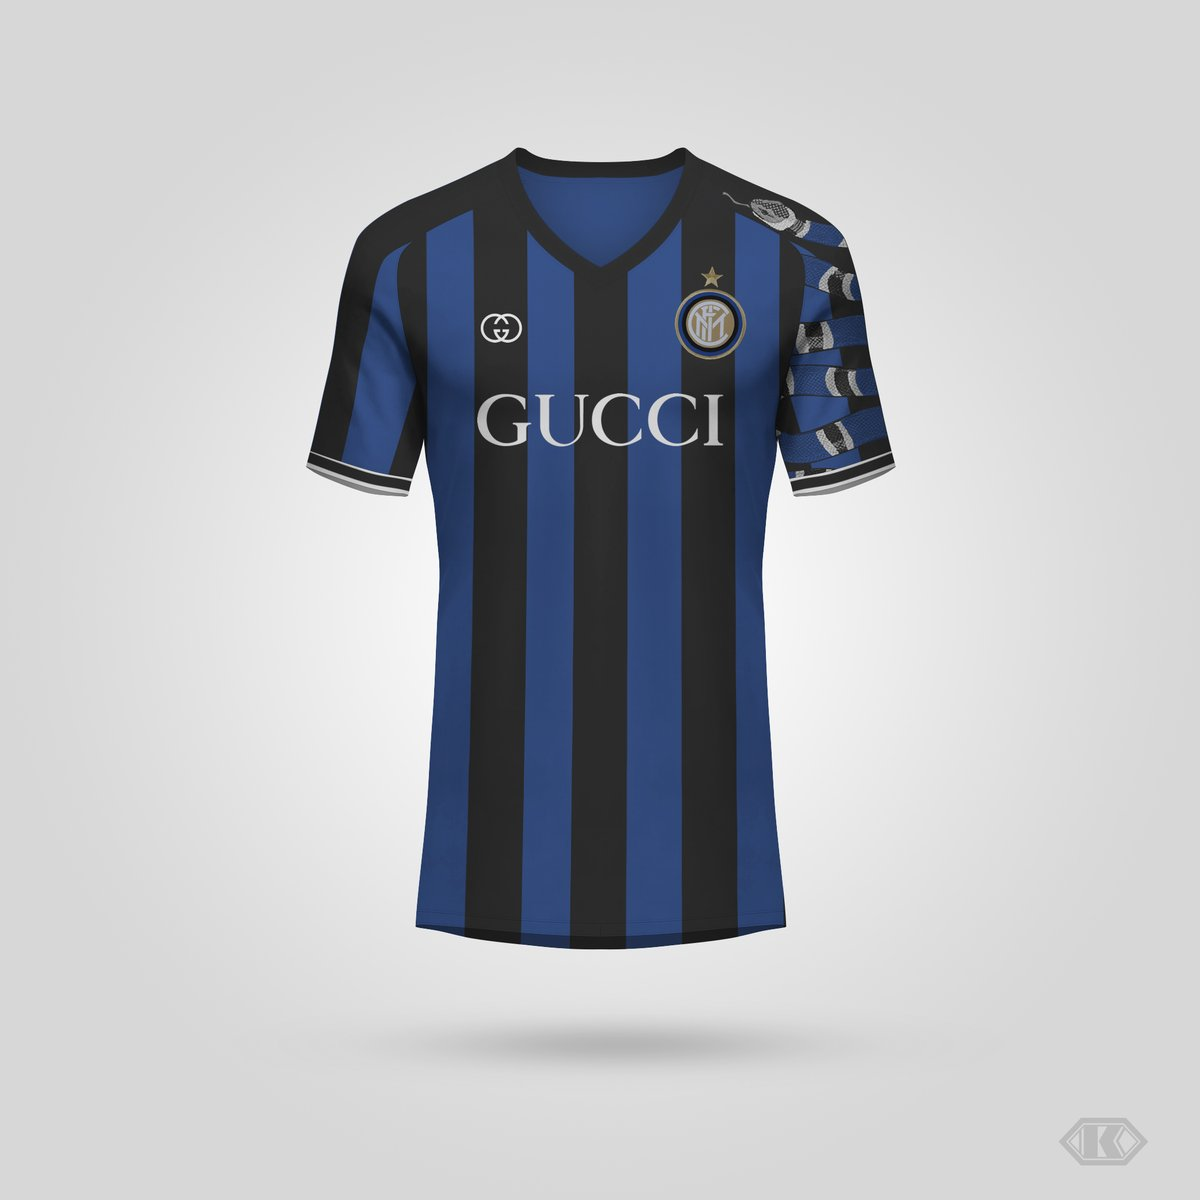 cf4f9fdc31b Gucci x Inter Home Shirt Concept by Kifth - Footy Headlines